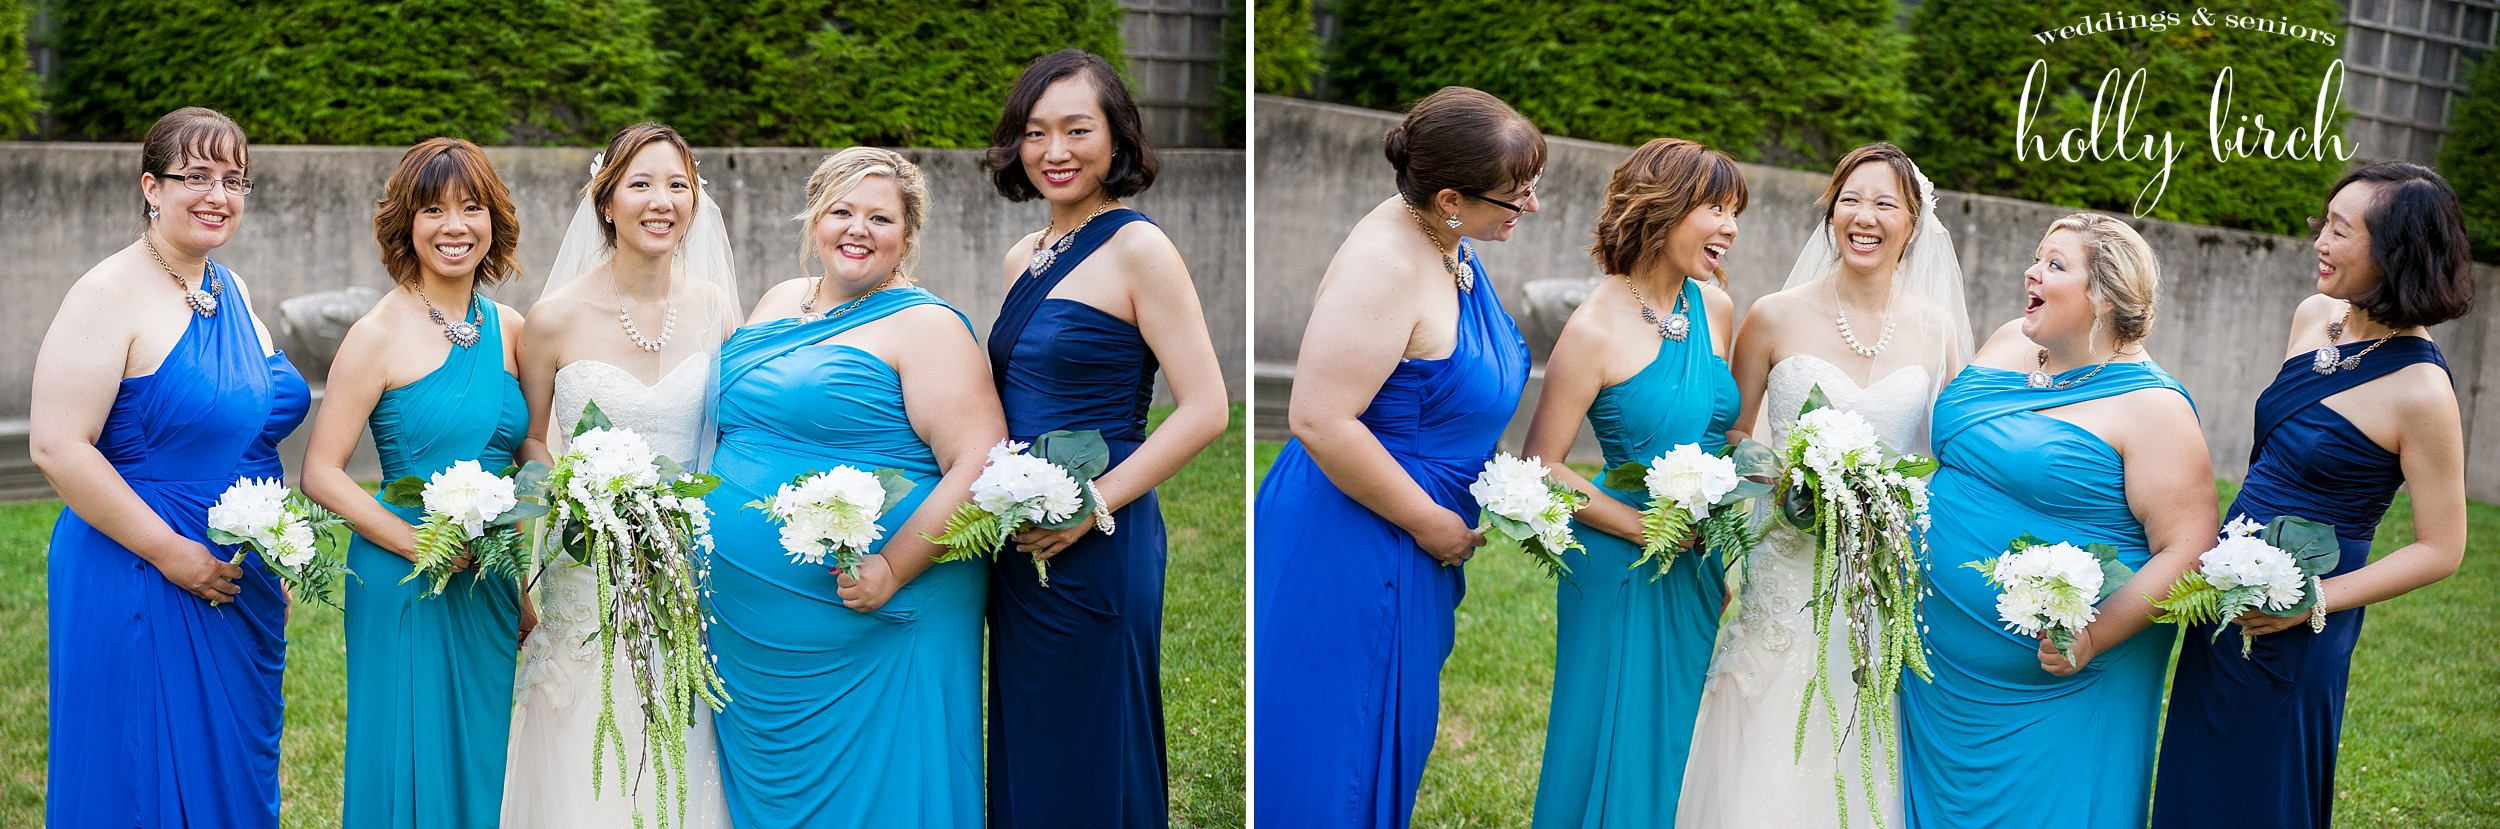 bridesmaids shades of blue